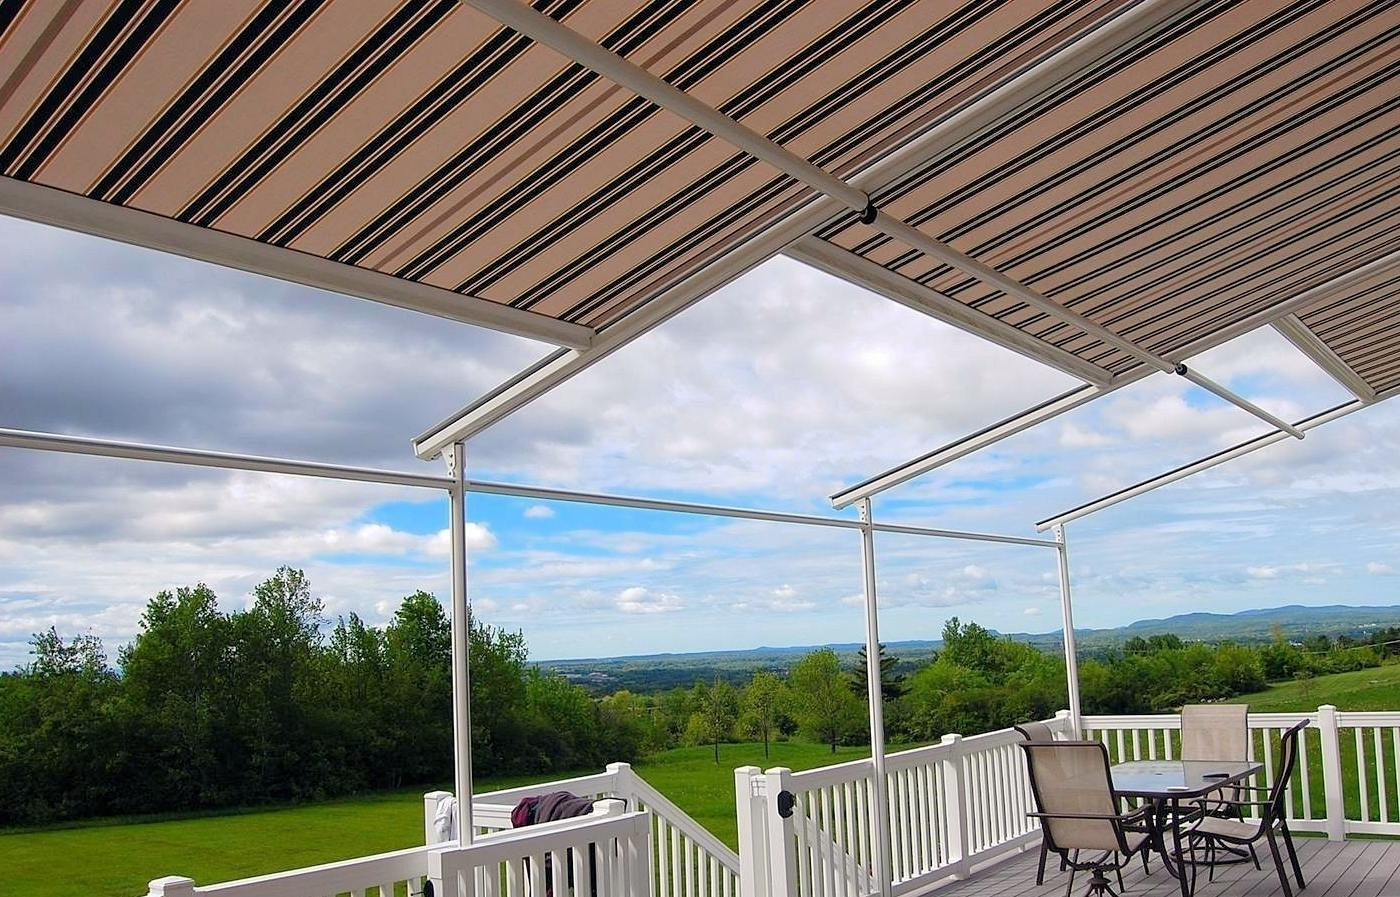 M & M Awnings & Signs Coupons near me in Islandia | 8coupons